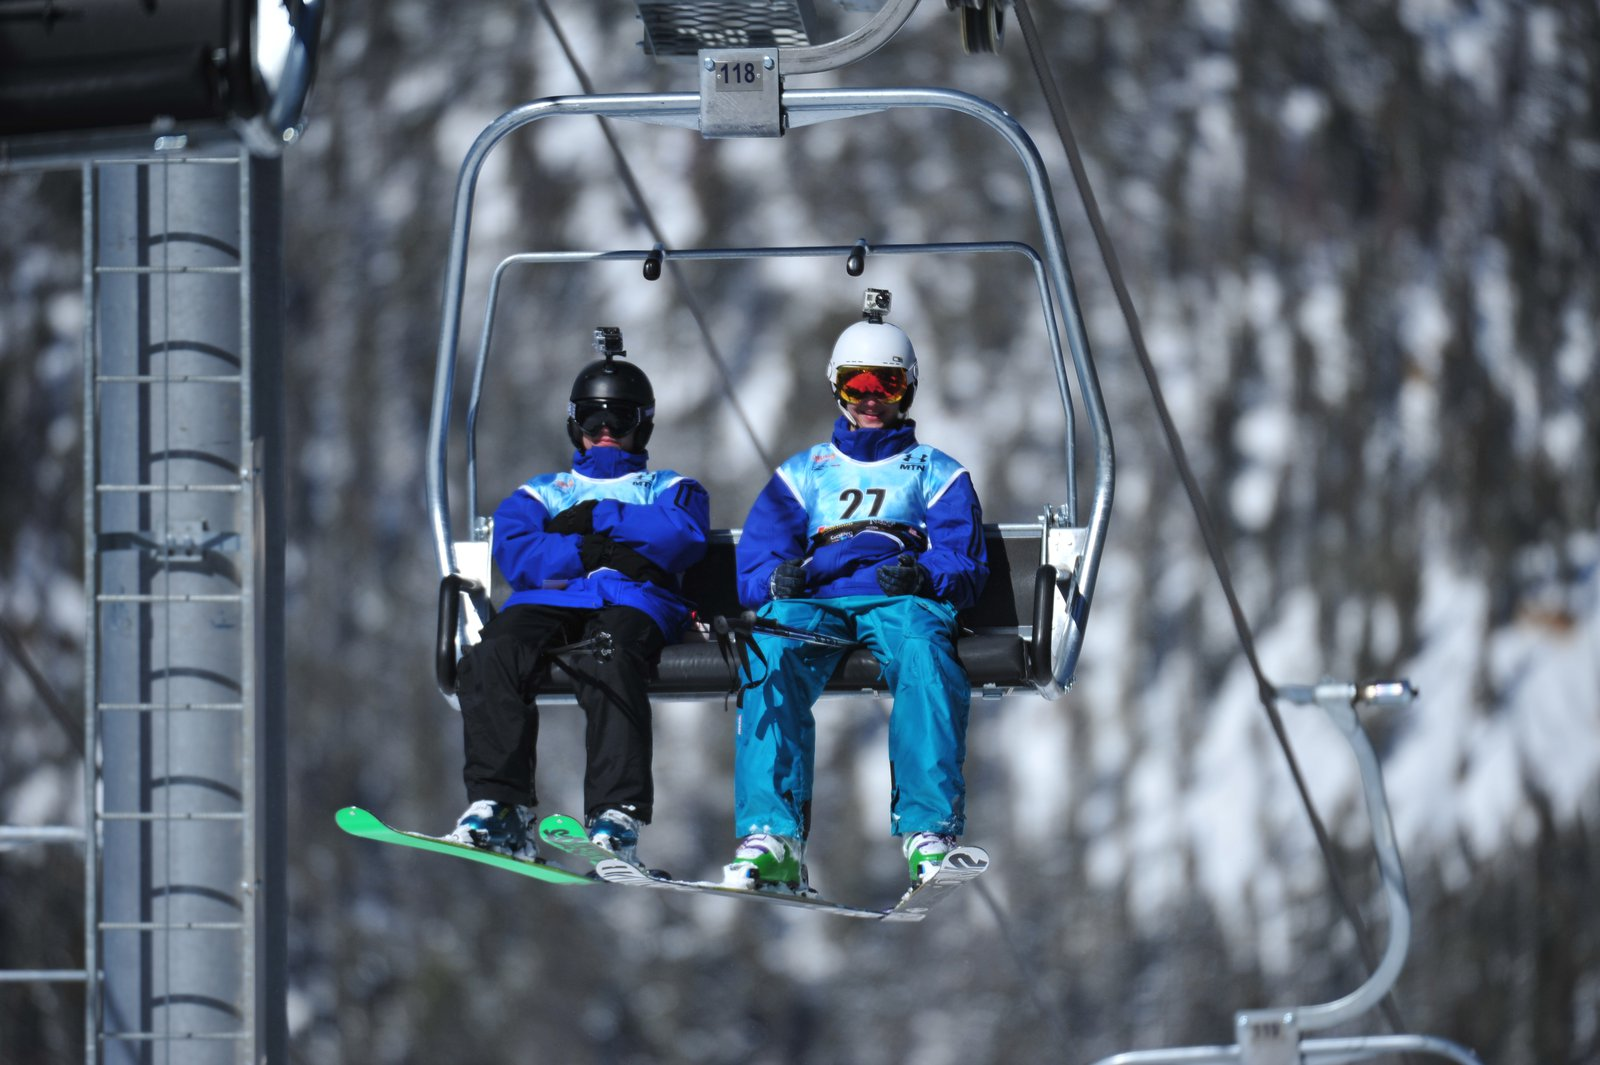 Riding up for slopestyle